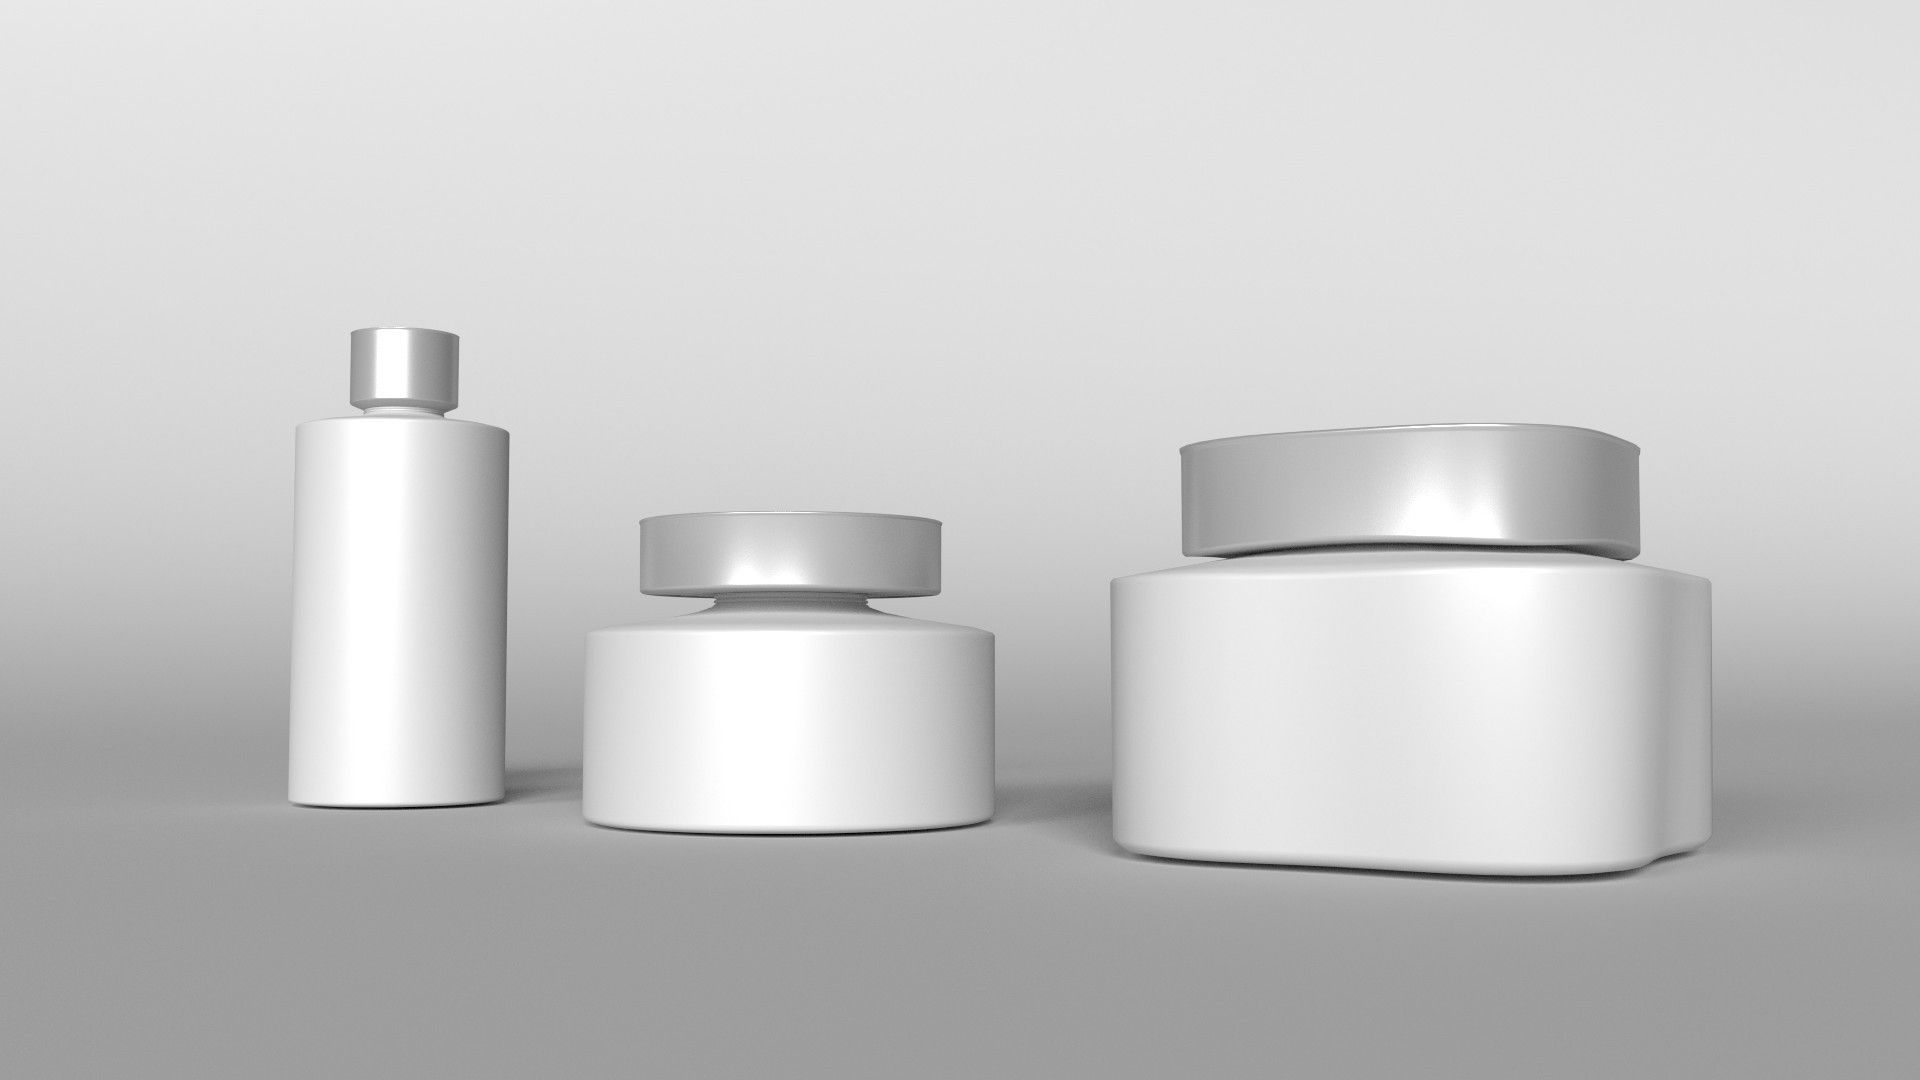 Bathroom container set 3d model obj 3ds fbx for Bathroom containers